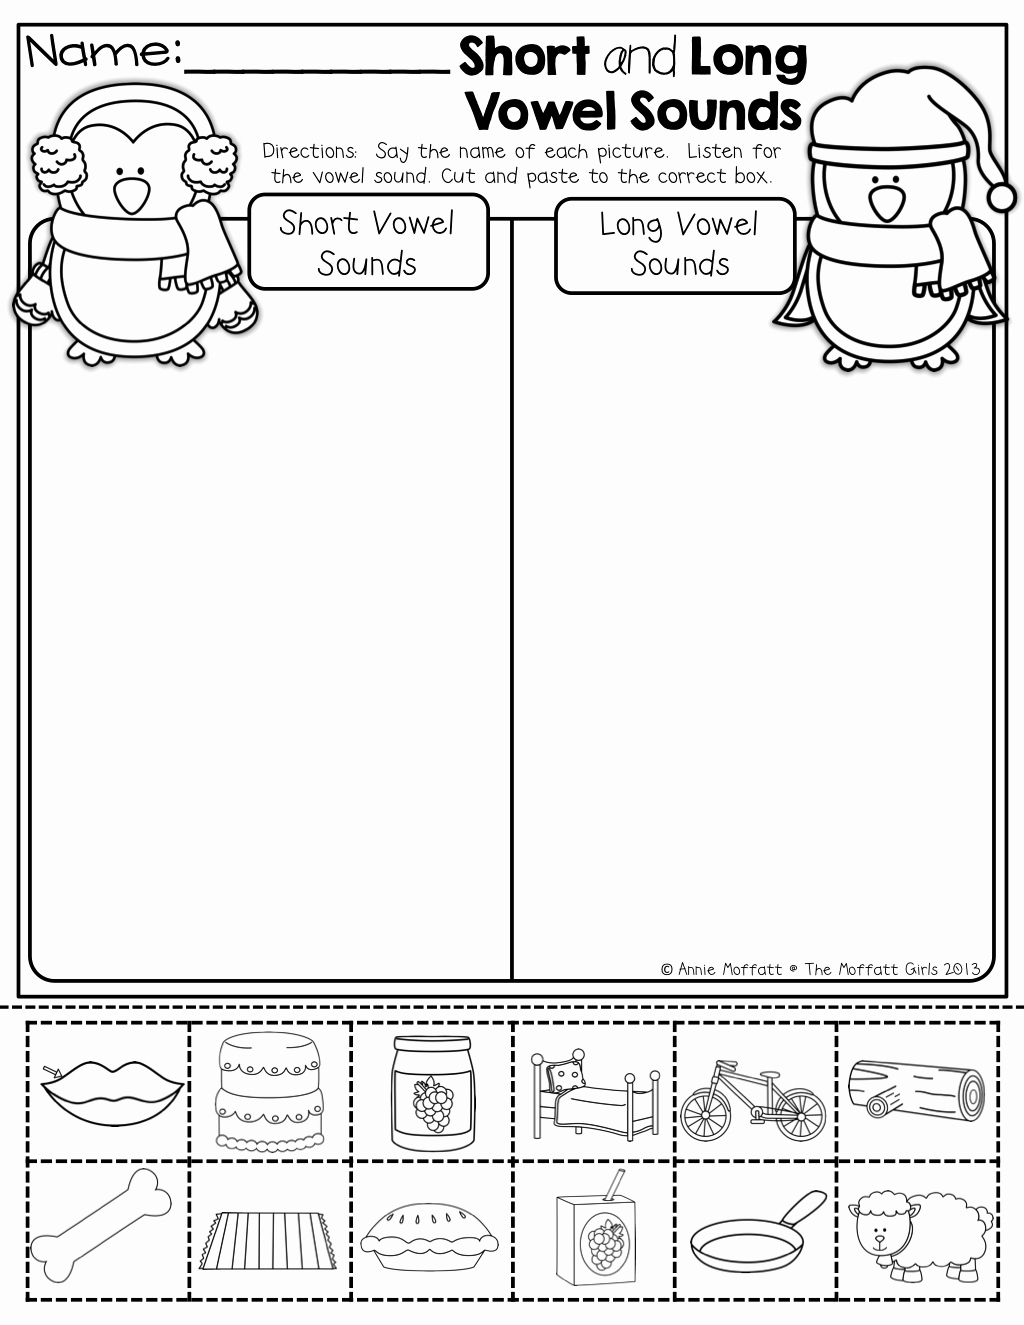 Short and Long Vowels Worksheet Beautiful Short and Long Vowel sounds … Teaching Ideas